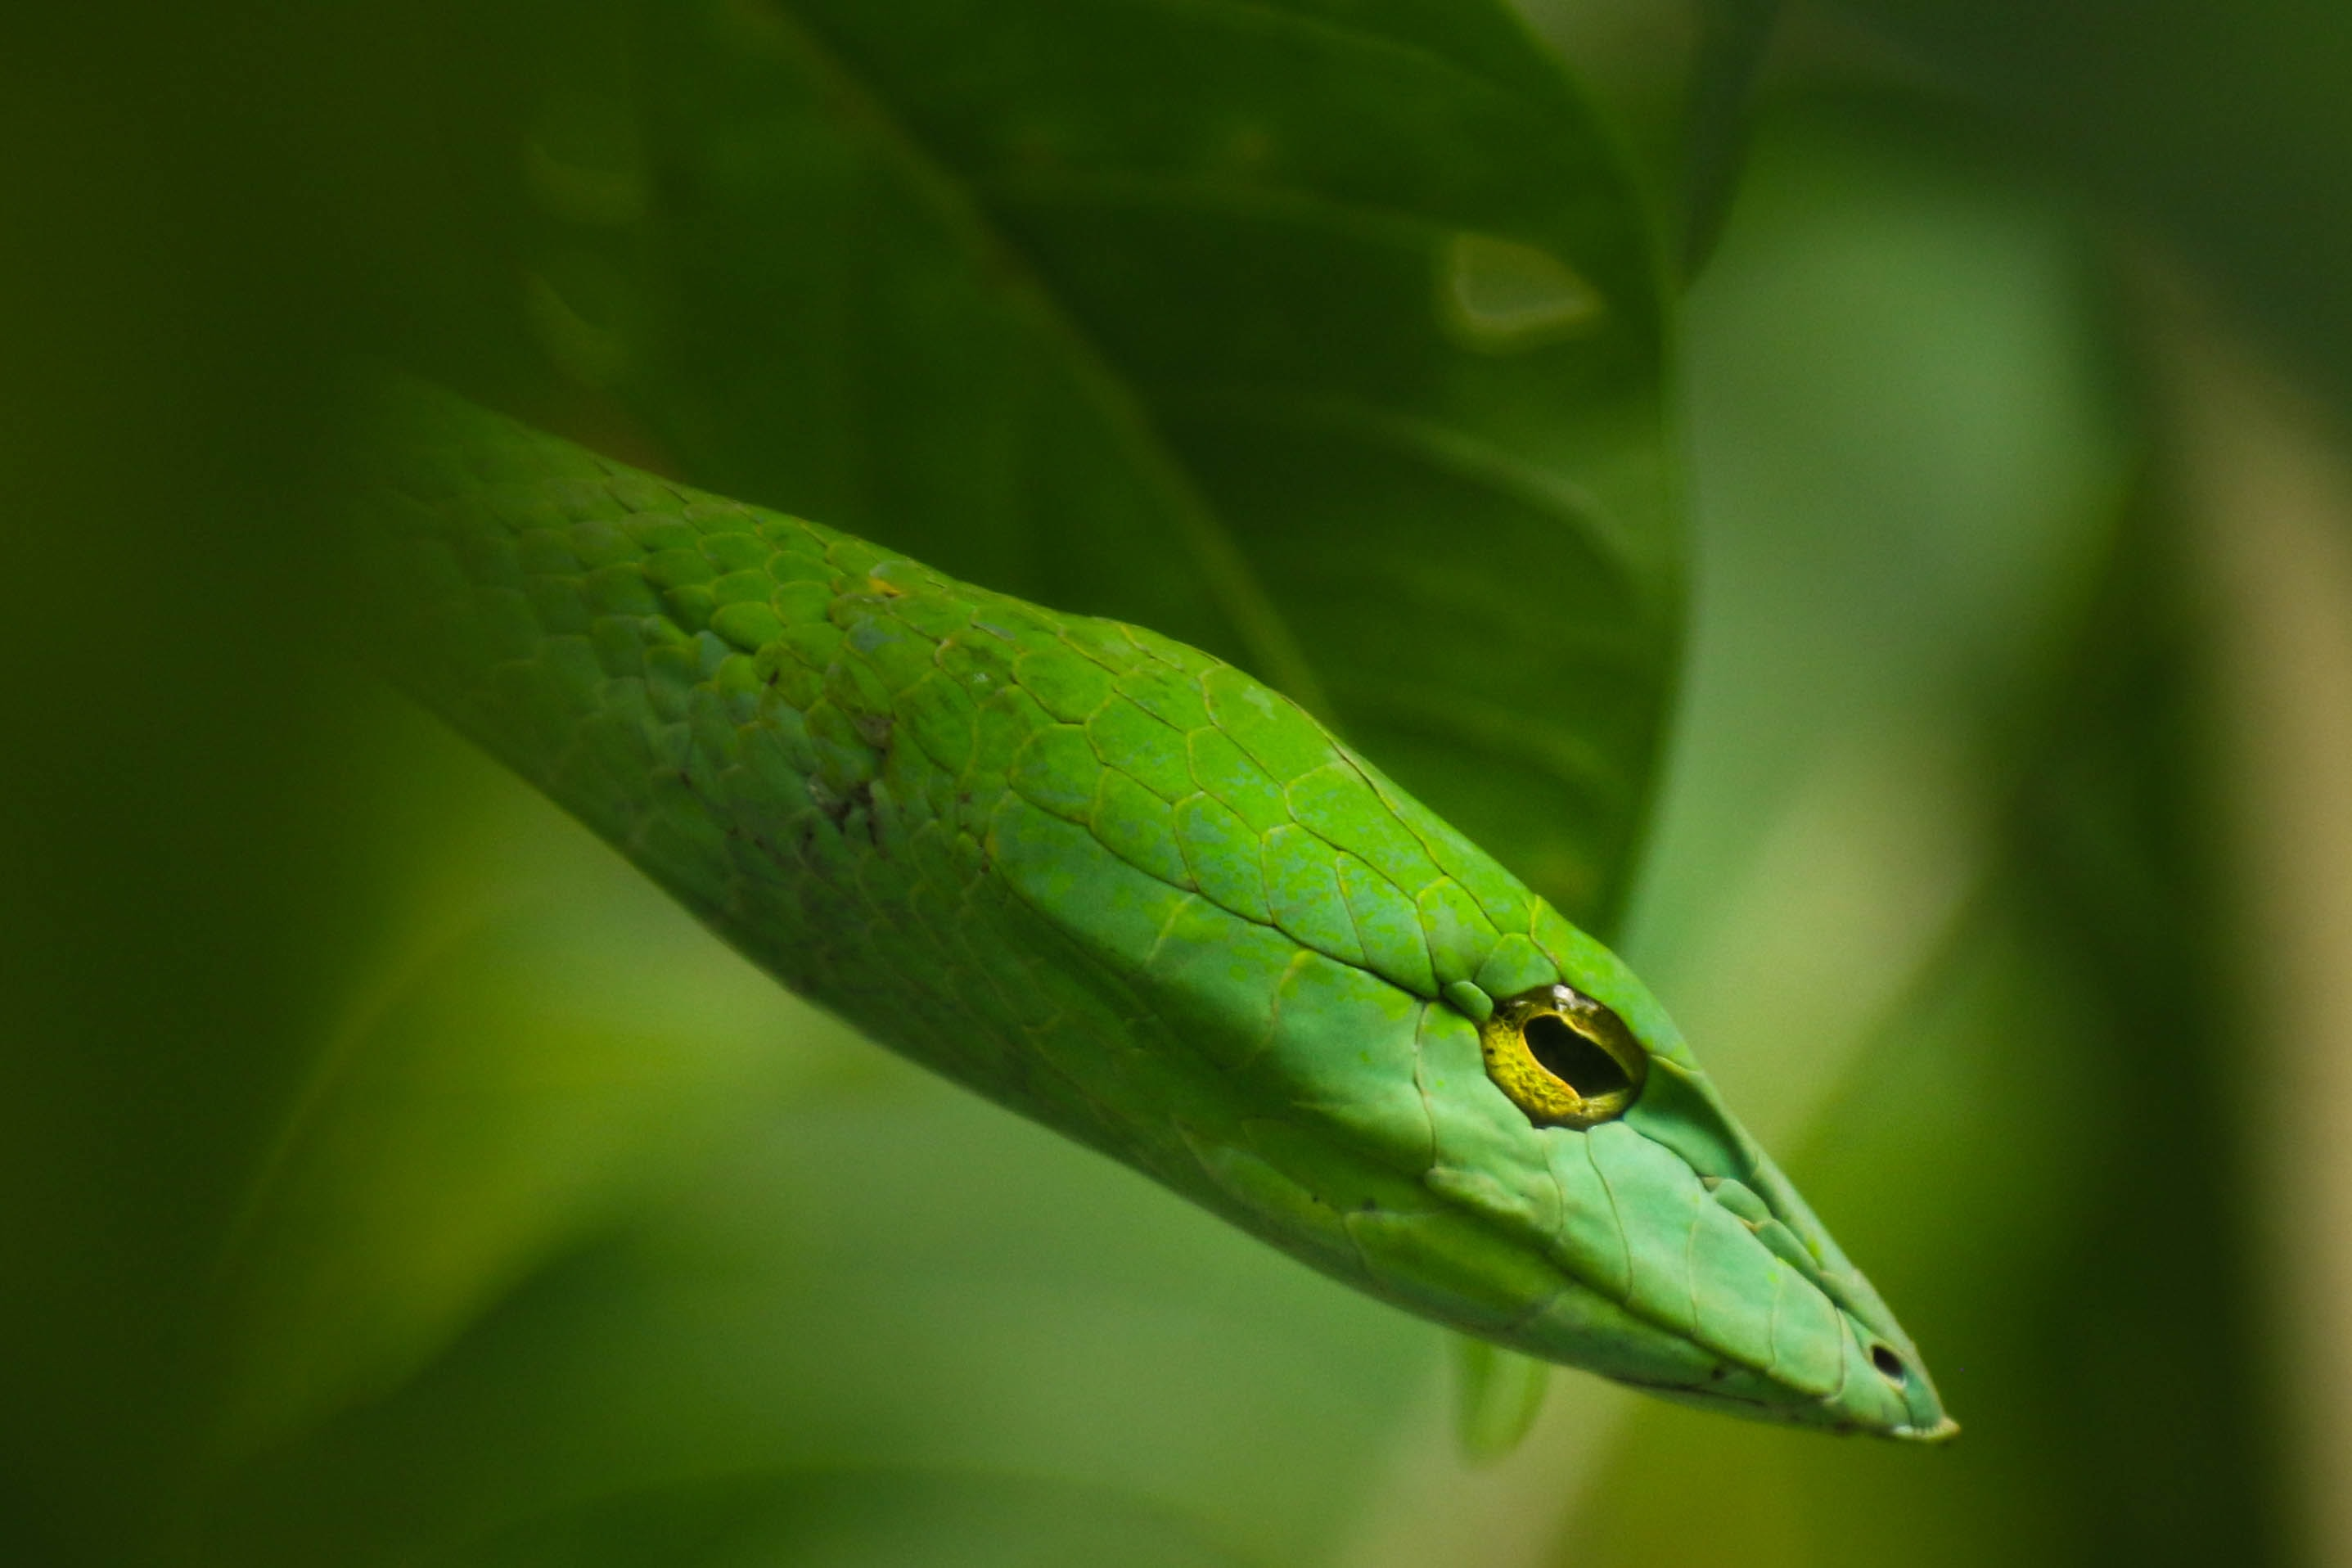 The macro view of a the face of a green snake on a leaf plant